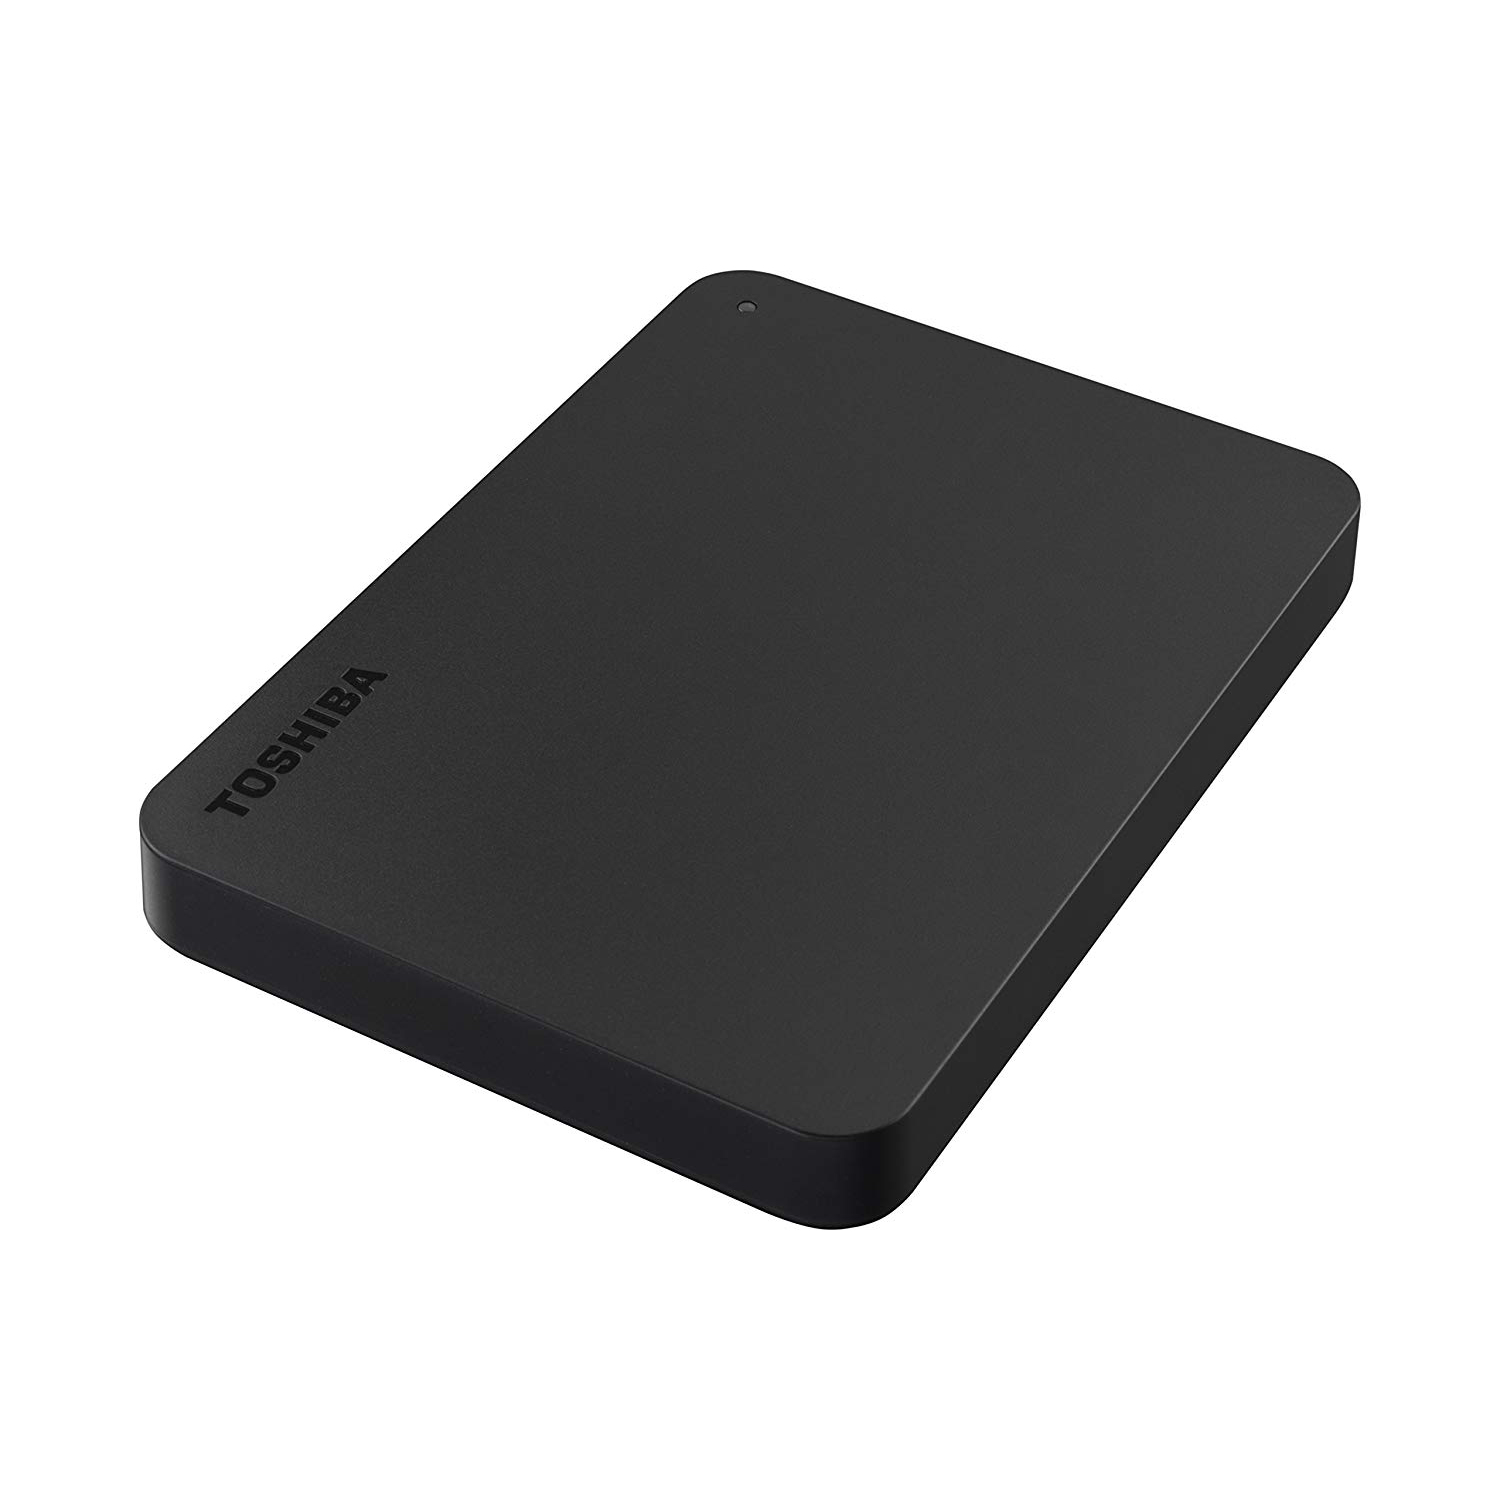 Portable hard disk storage device Toshiba Canvio Basics Hard Drive USB 4TB Black Ref HDTB440EK3CA